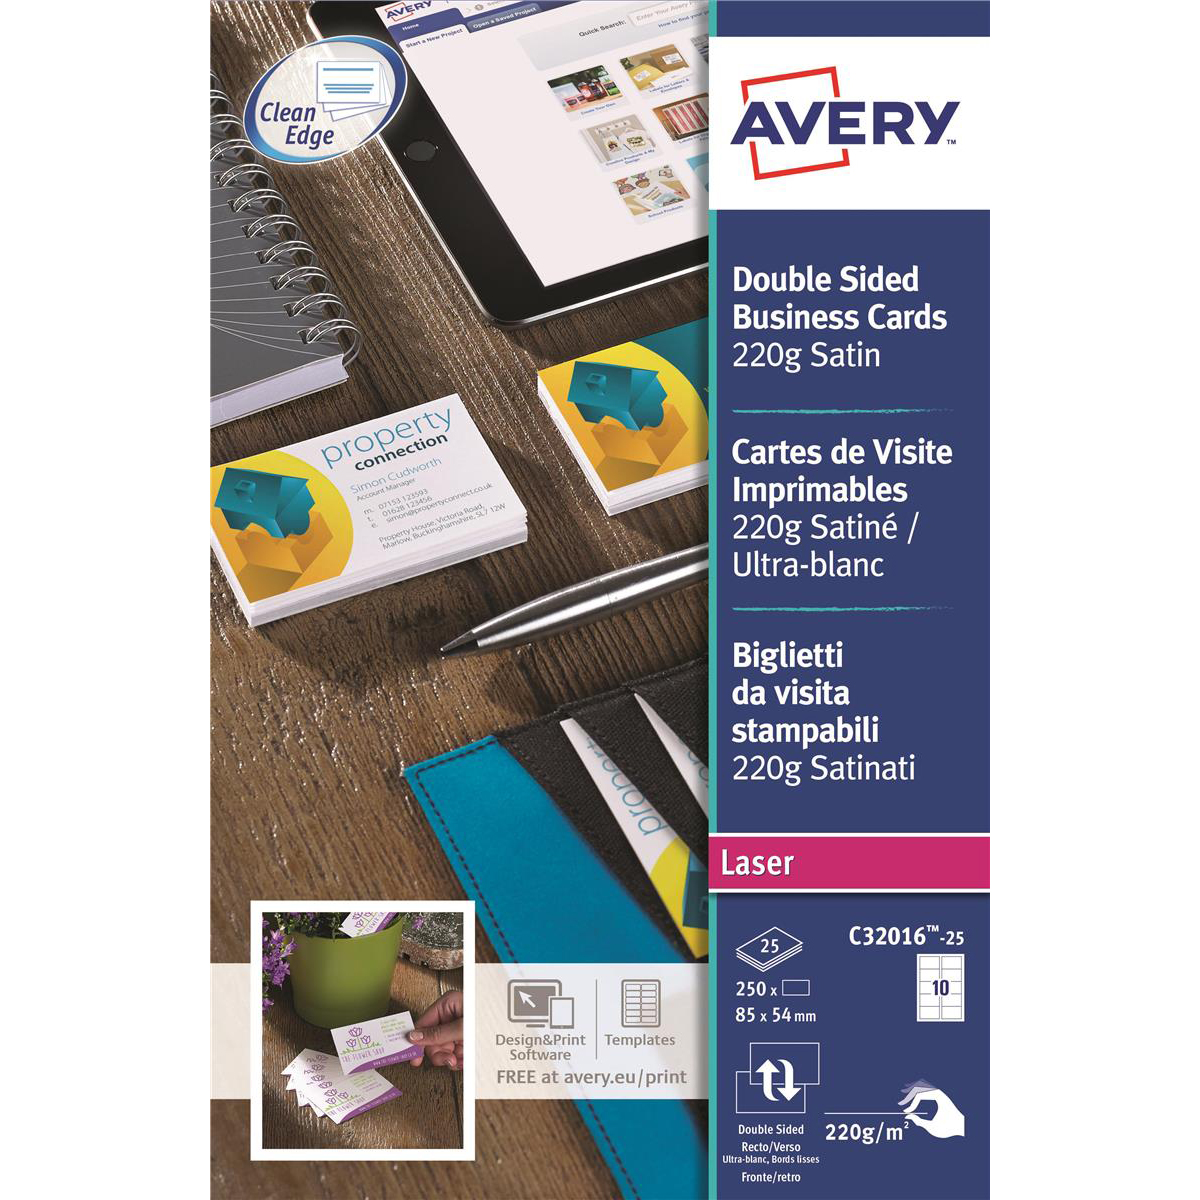 Avery Quick and Clean Business Cards Laser 220gsm 10 per Sheet Satin Colour Ref C32016-25 250 Cards